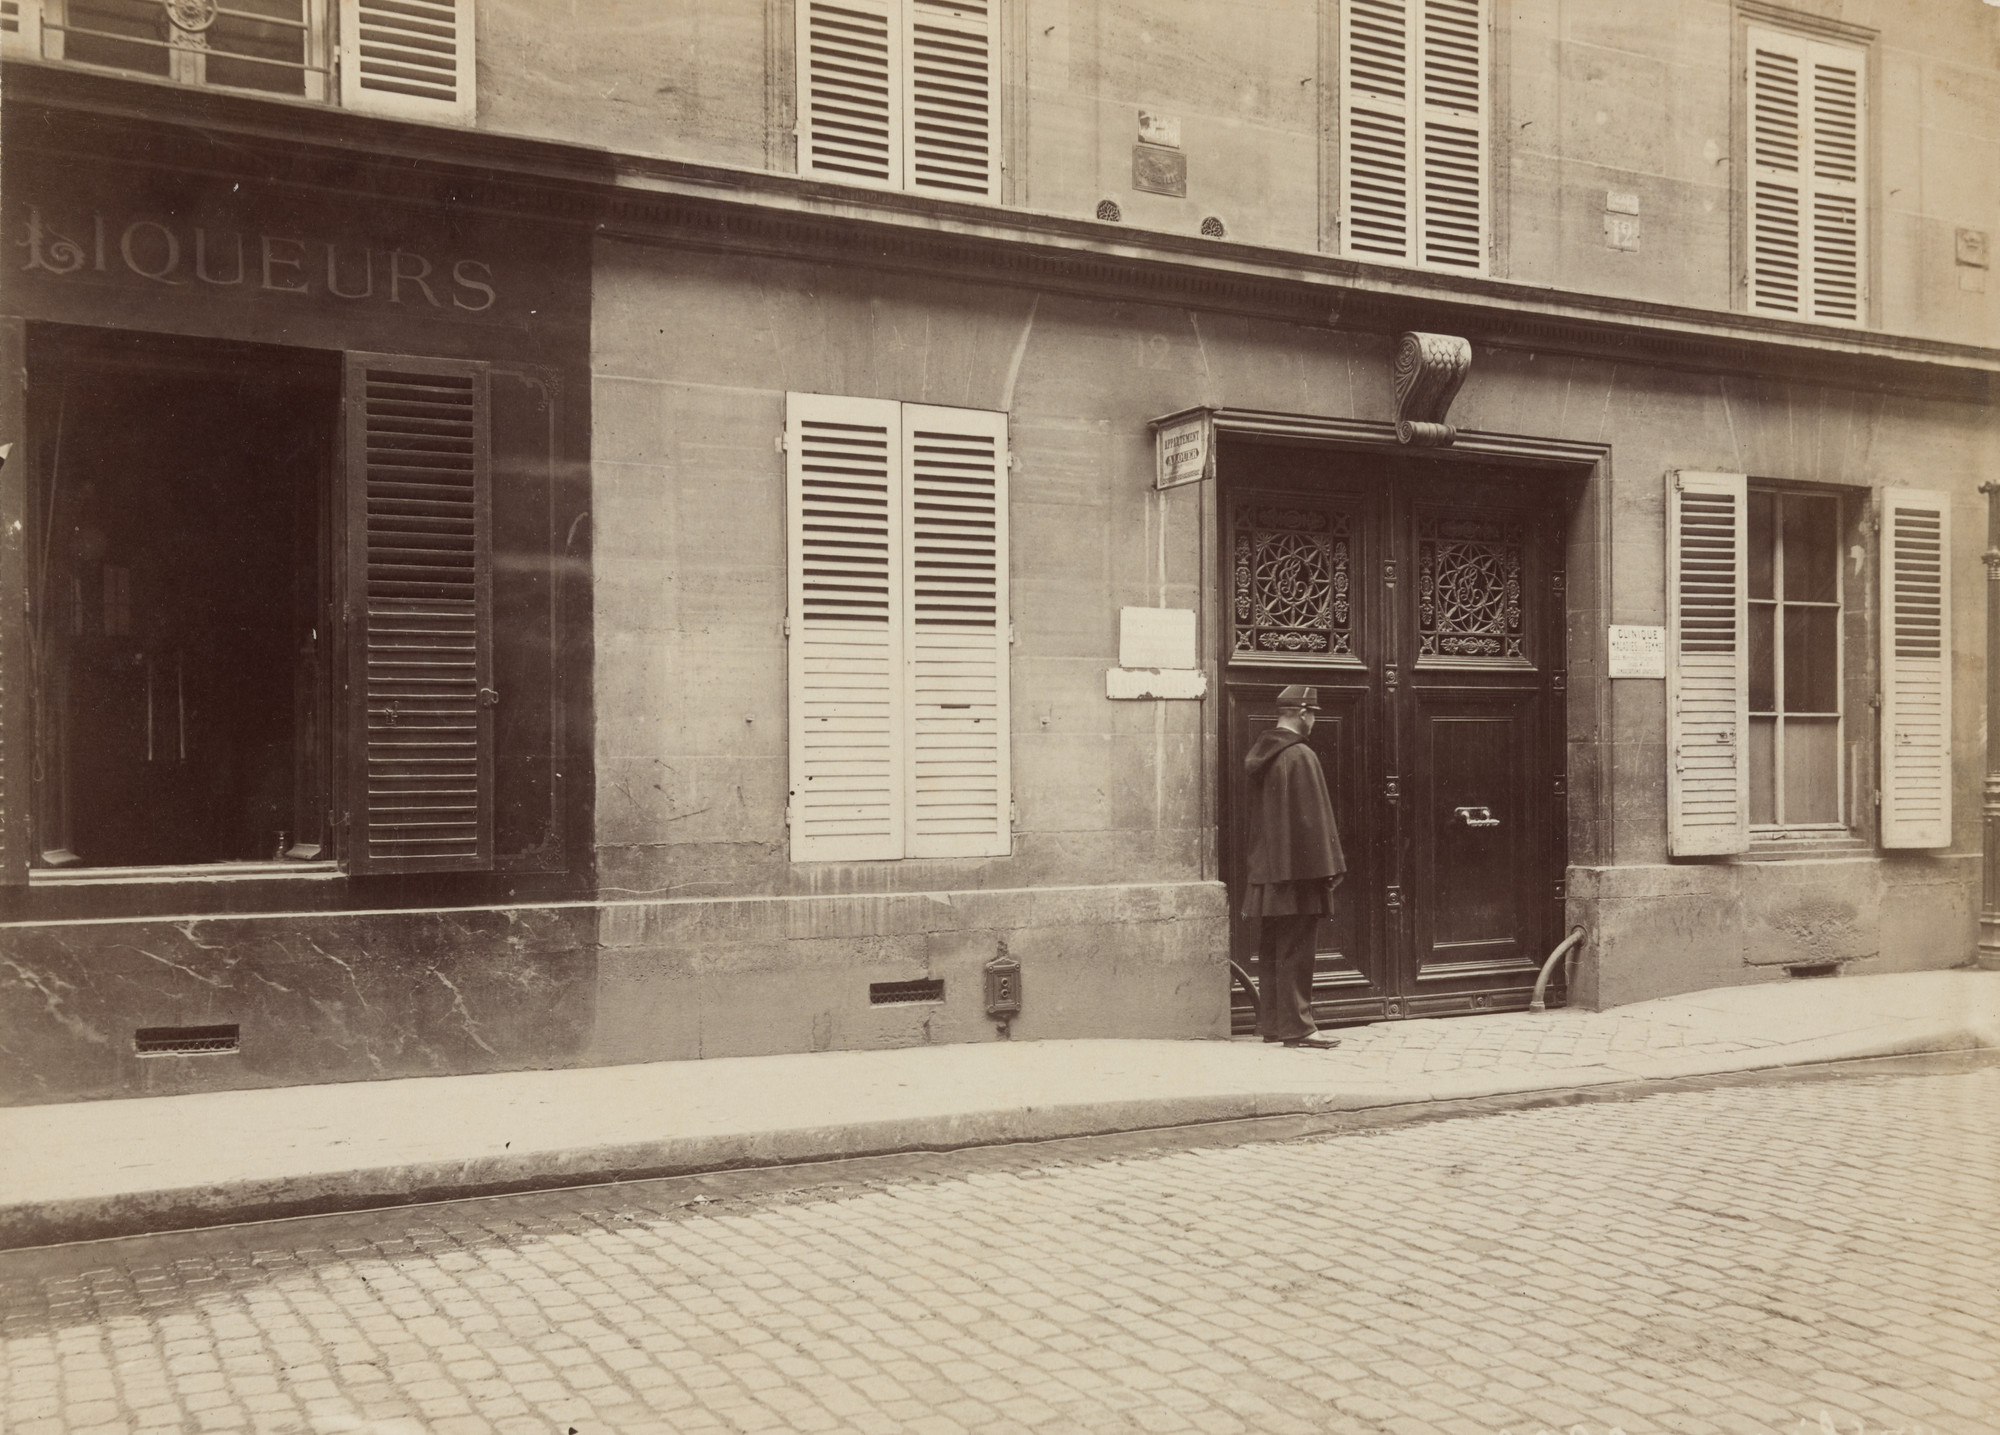 Prefecture of Police, Paris. Rue Blanc 12, April 29, 1895, After the Crime. 1895